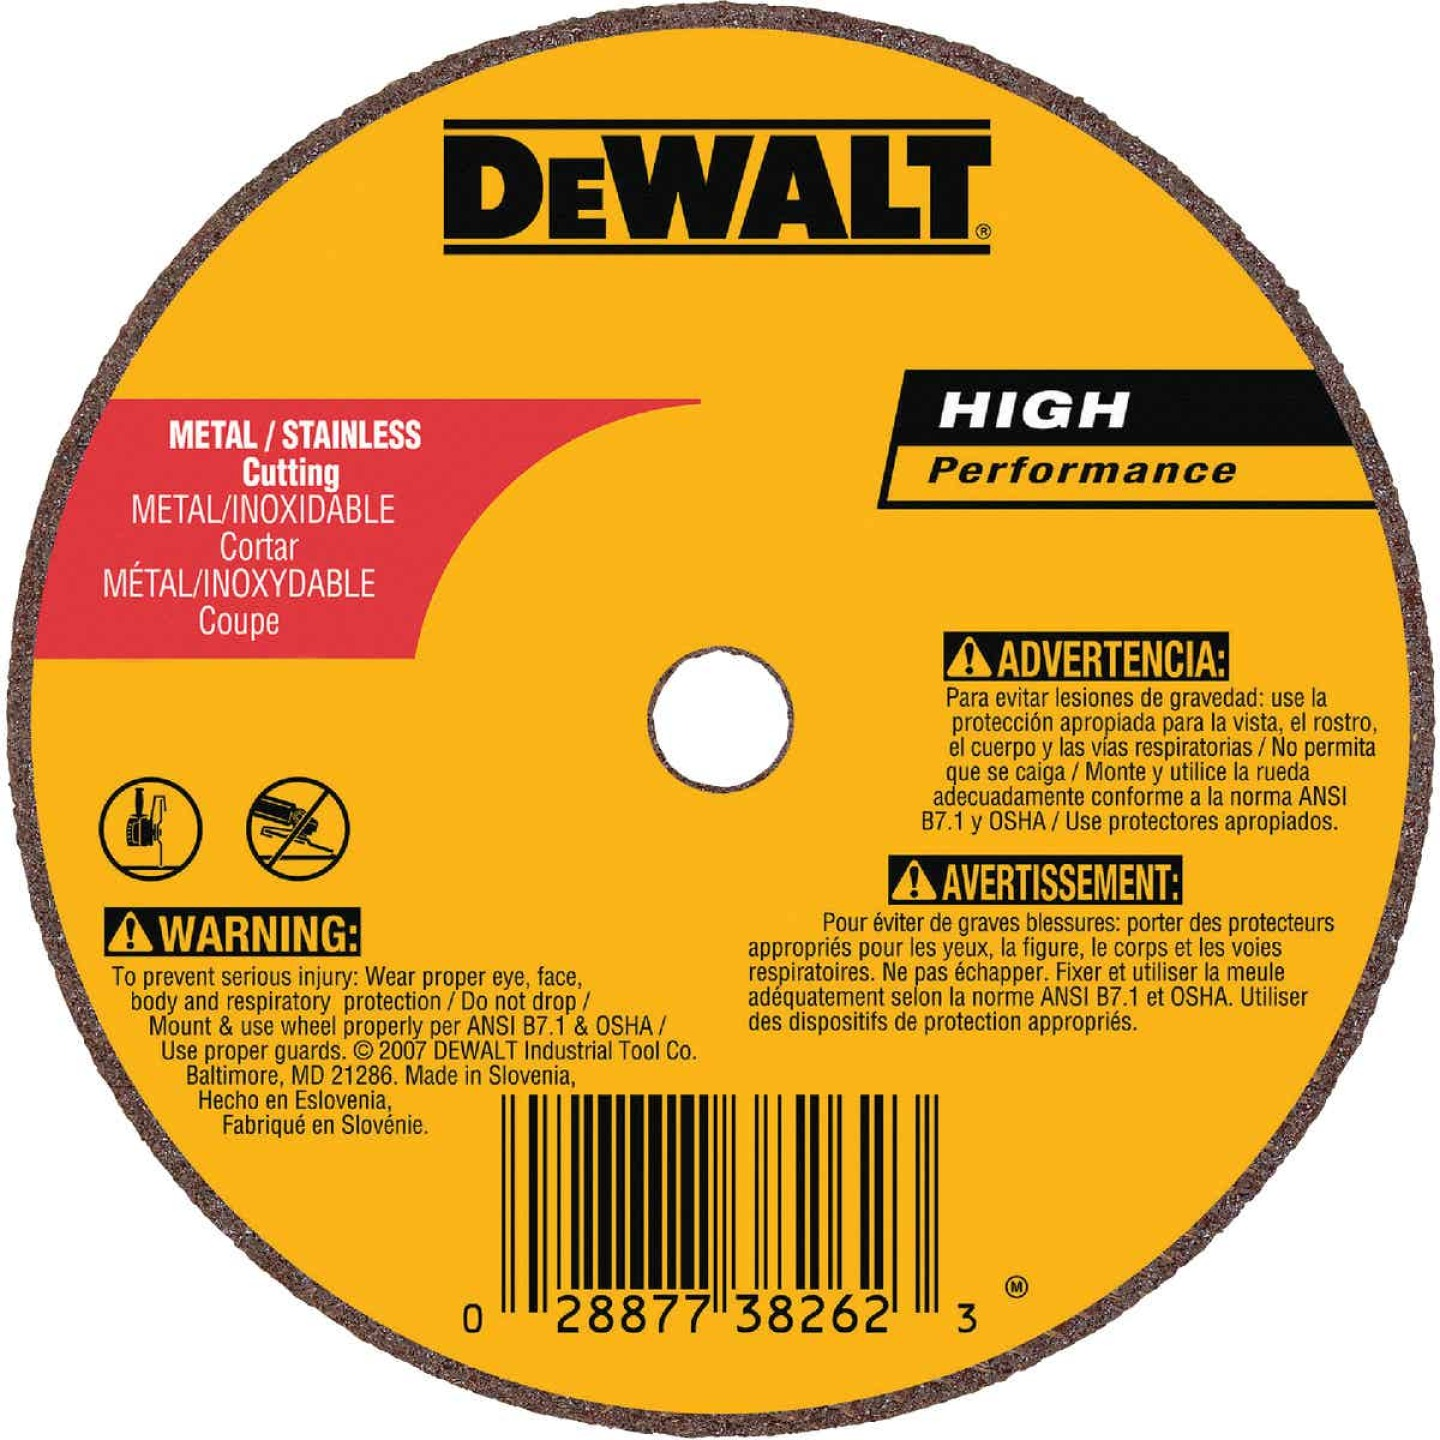 DeWalt HP Type 1 3 In. x 1/16 In. x 3/8 In. Metal/Stainless Cut-Off Wheel Image 1